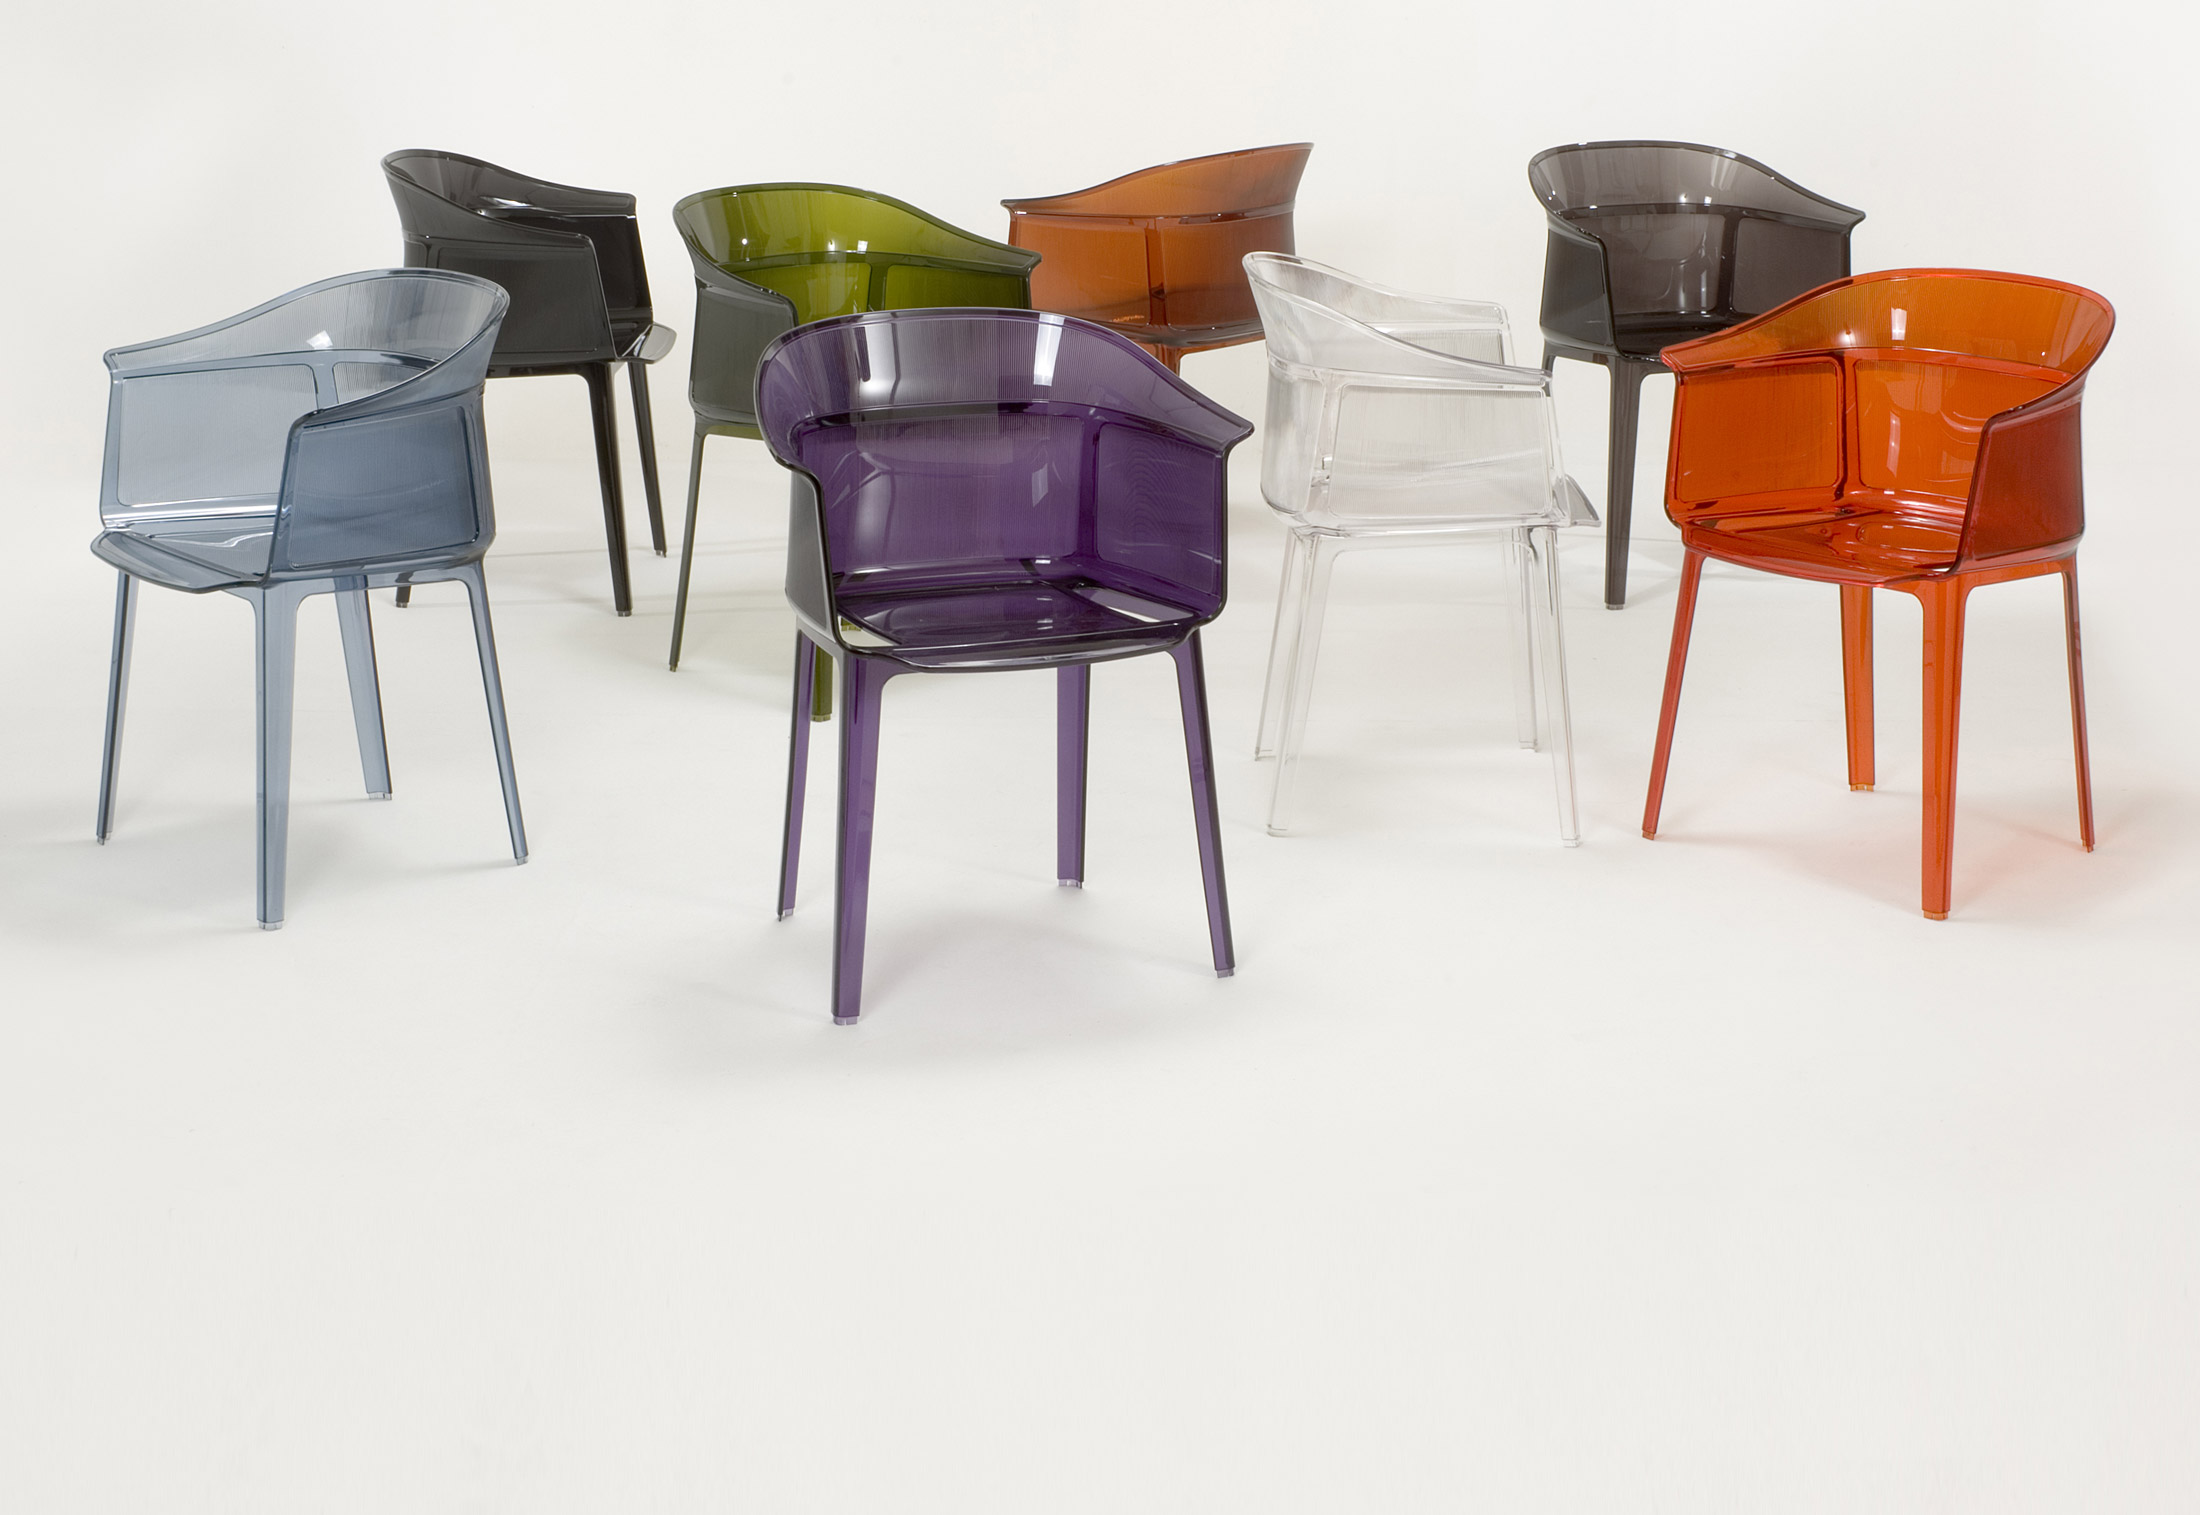 Papyrus di kartell sedie poltroncine arredamento for Sedie design kartell